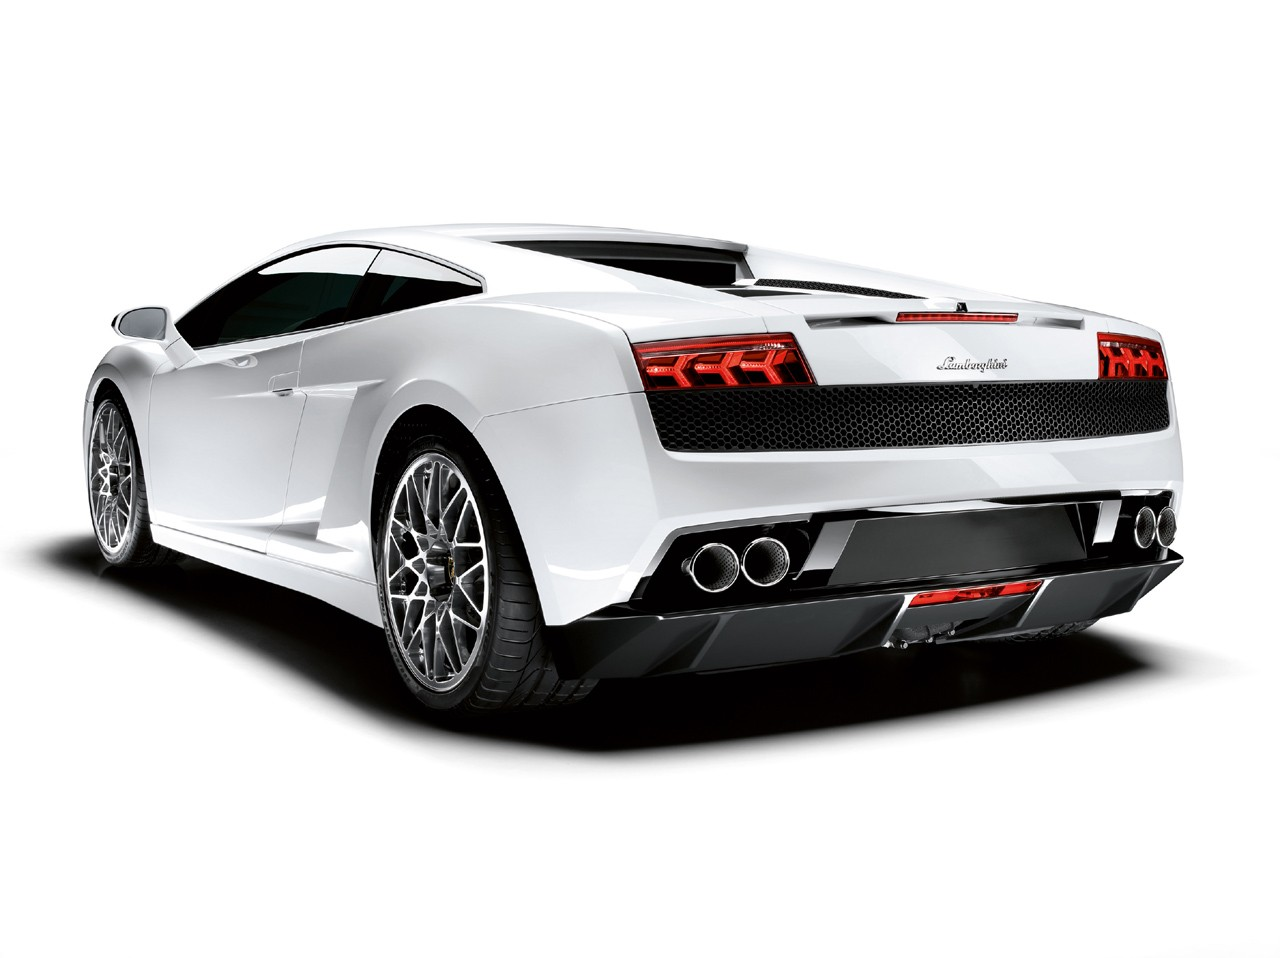 hd car wallpapers european sports cars. Black Bedroom Furniture Sets. Home Design Ideas